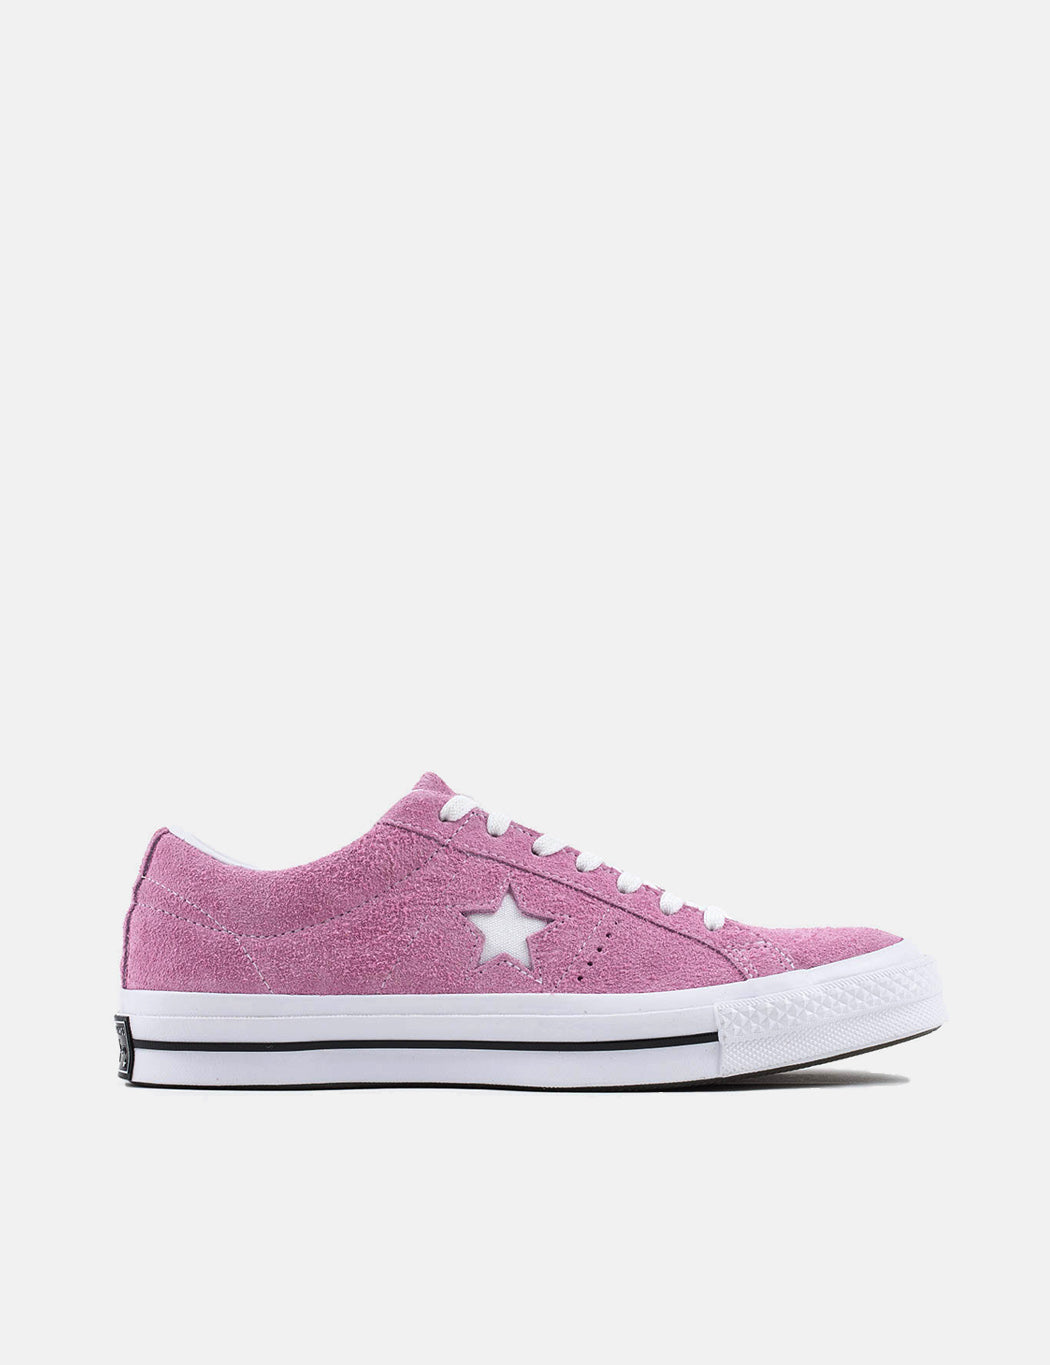 23d809f26ce Converse One Star Ox Low Suede (159492C) - Light Orchid White Black ...